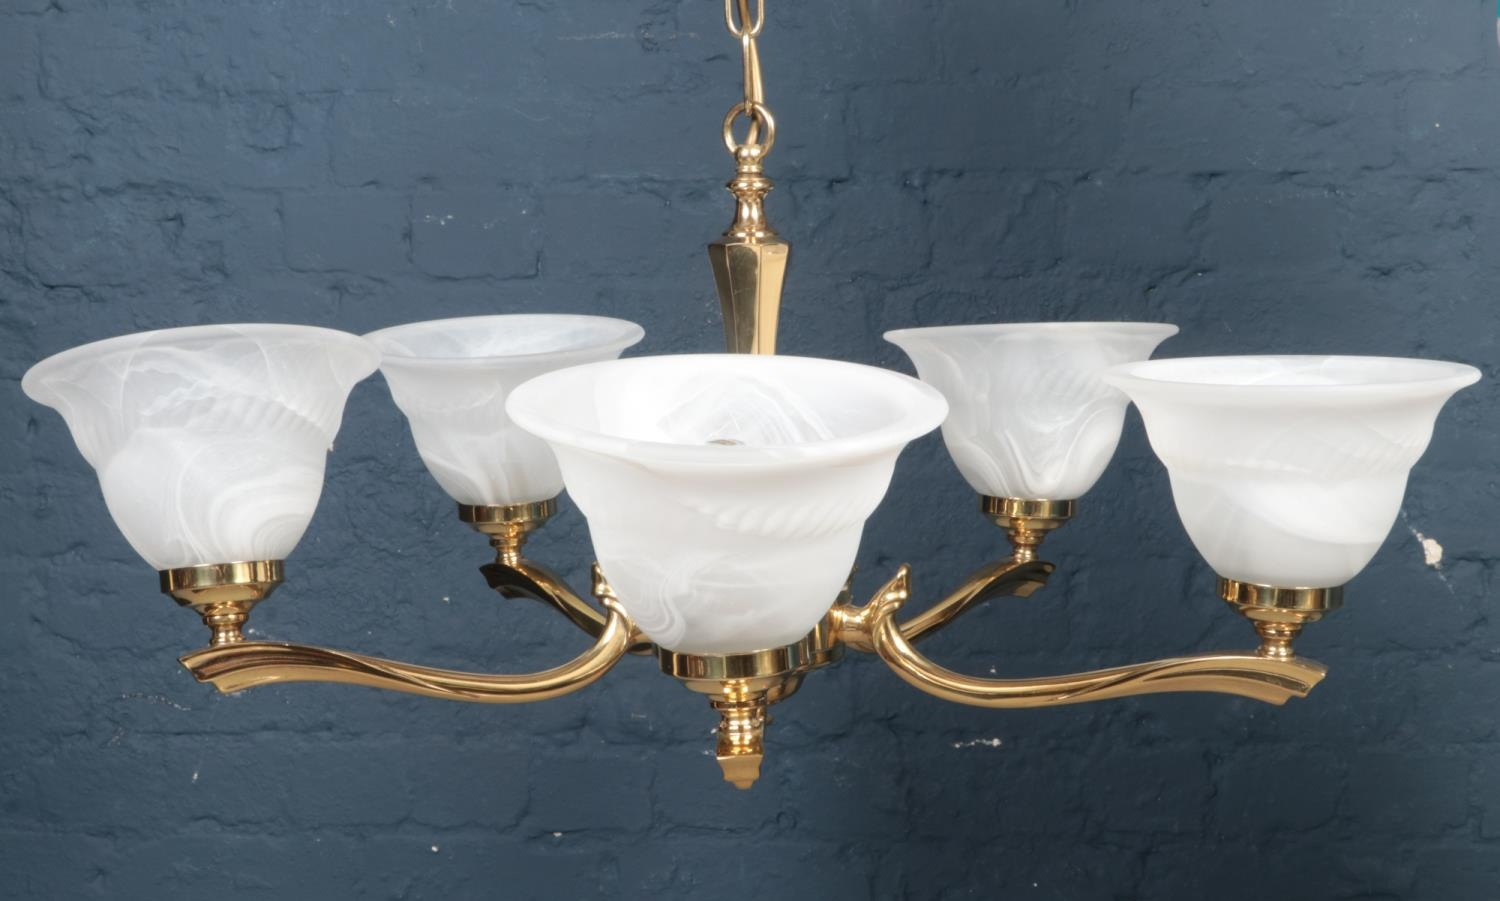 A 5 arm brass chandelier with glass bowl shades.